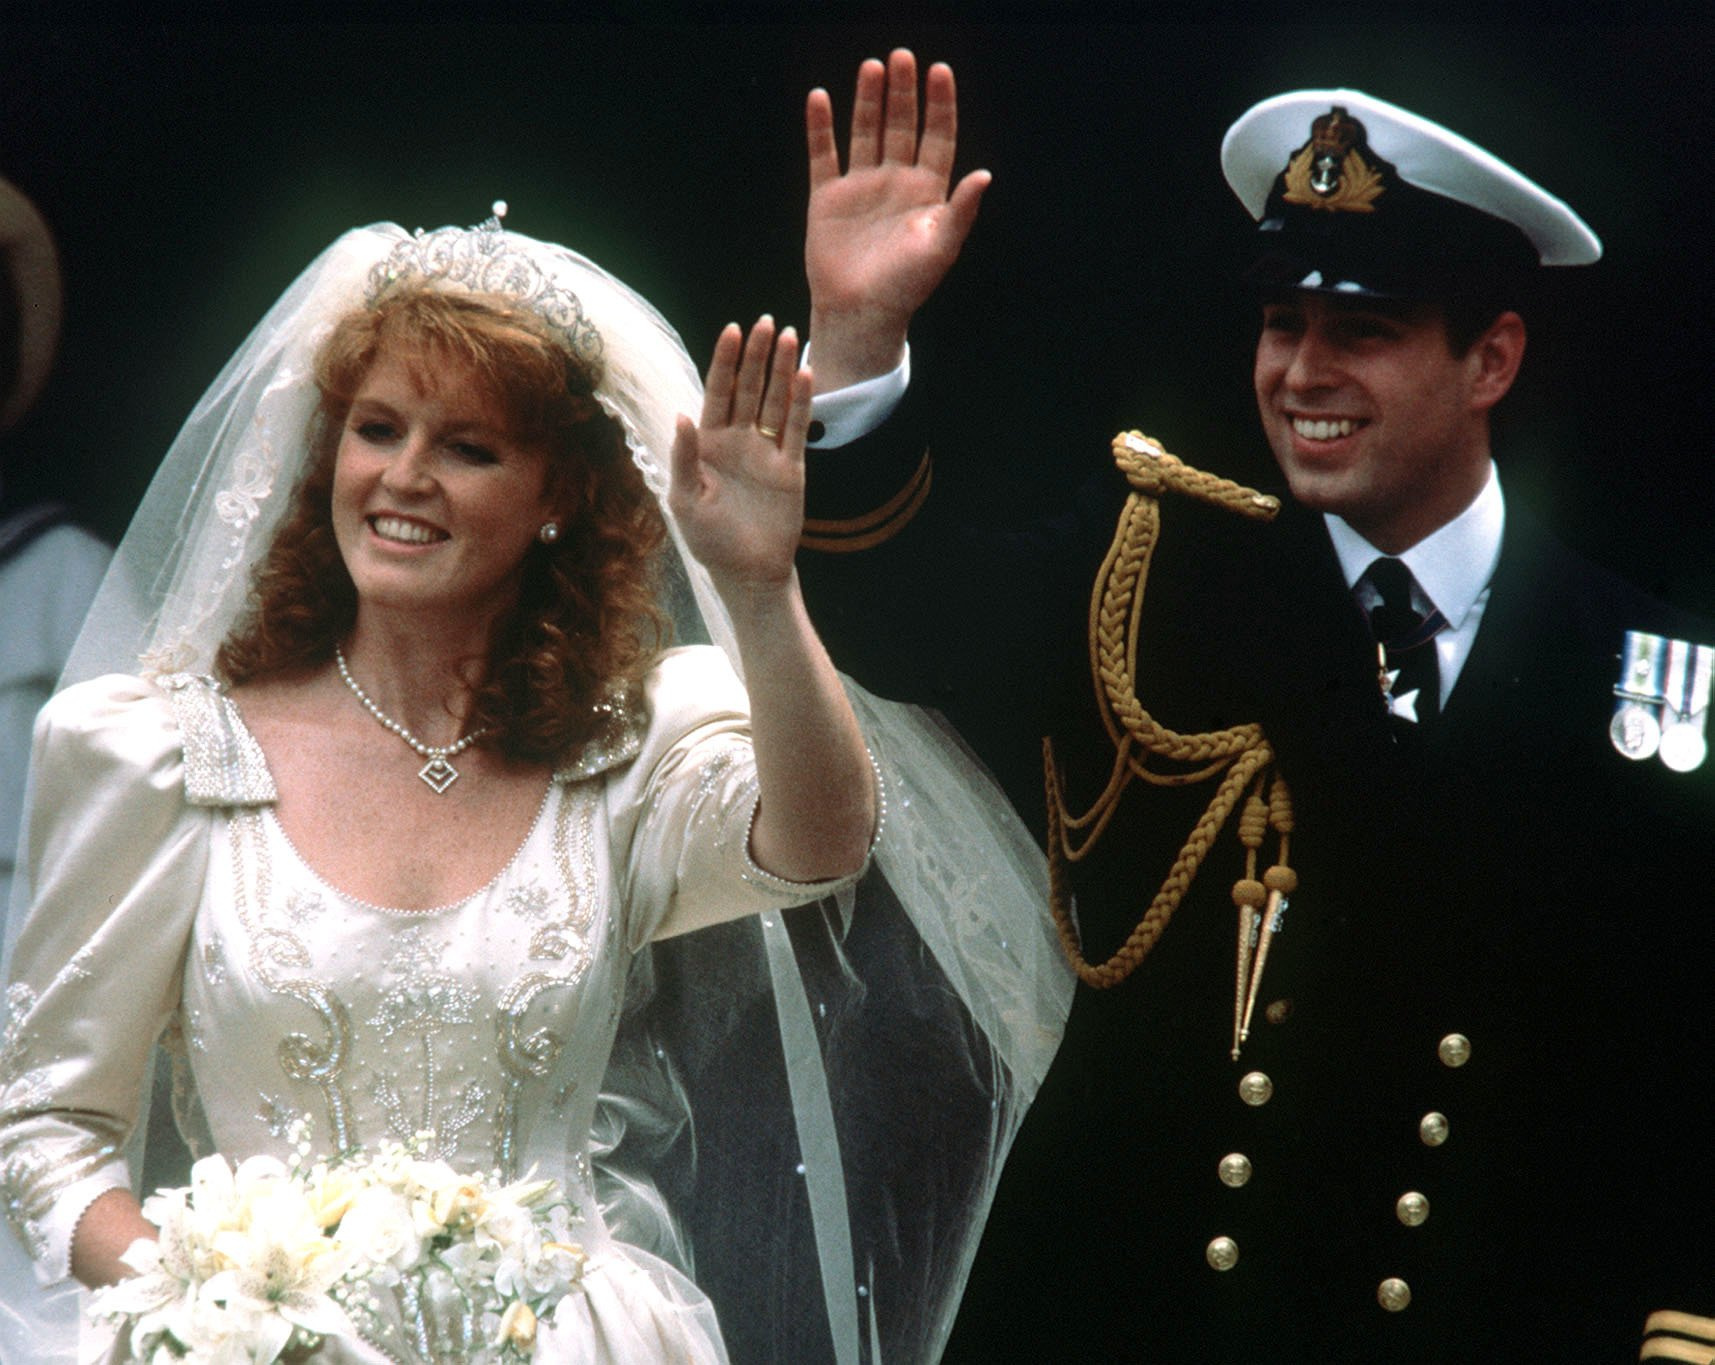 """File photo dated 23/07/1986 of Prince Andrew and his bride Sarah Ferguson waving to crowds as they leave Westminster Abbey, London after their wedding ceremony. When Princess Eugenie's parents married, Britain was in the grip of """"Fergie Fever""""., Image: 390117510, License: Rights-managed, Restrictions: FILE PHOTO, Model Release: no, Credit line: Profimedia, Press Association"""